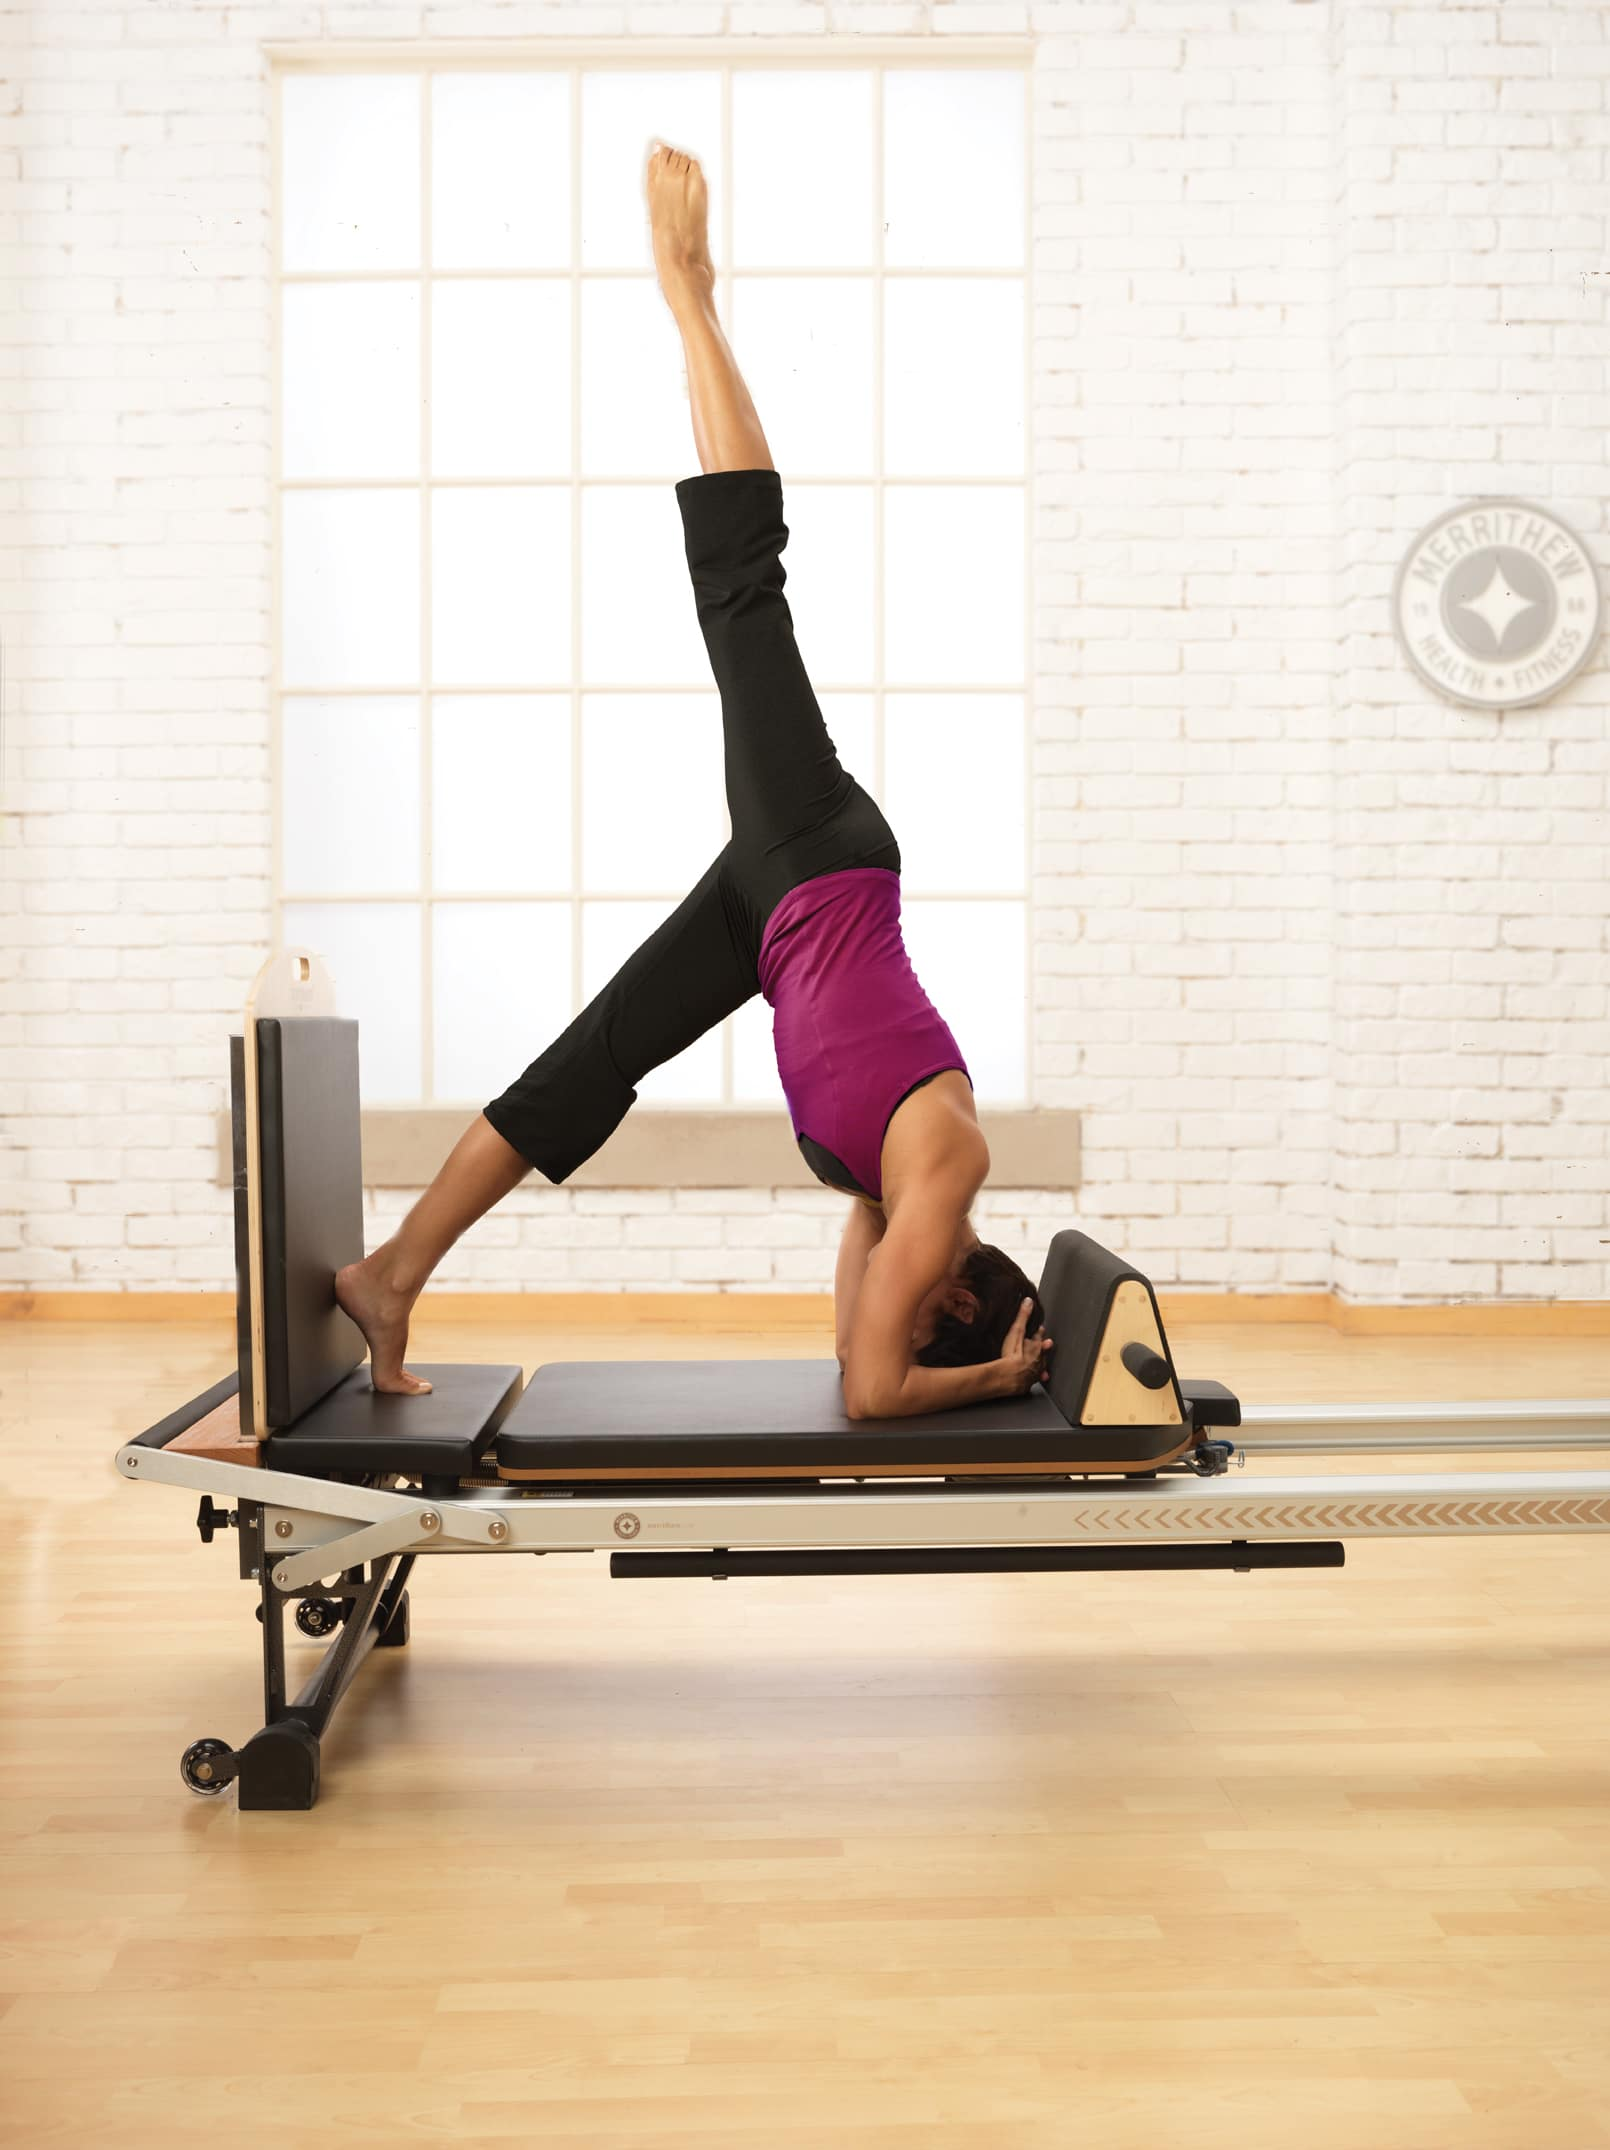 Zenga Equipment - Headstand with Jump Board and Triangle on the Stott Pilates Reformer